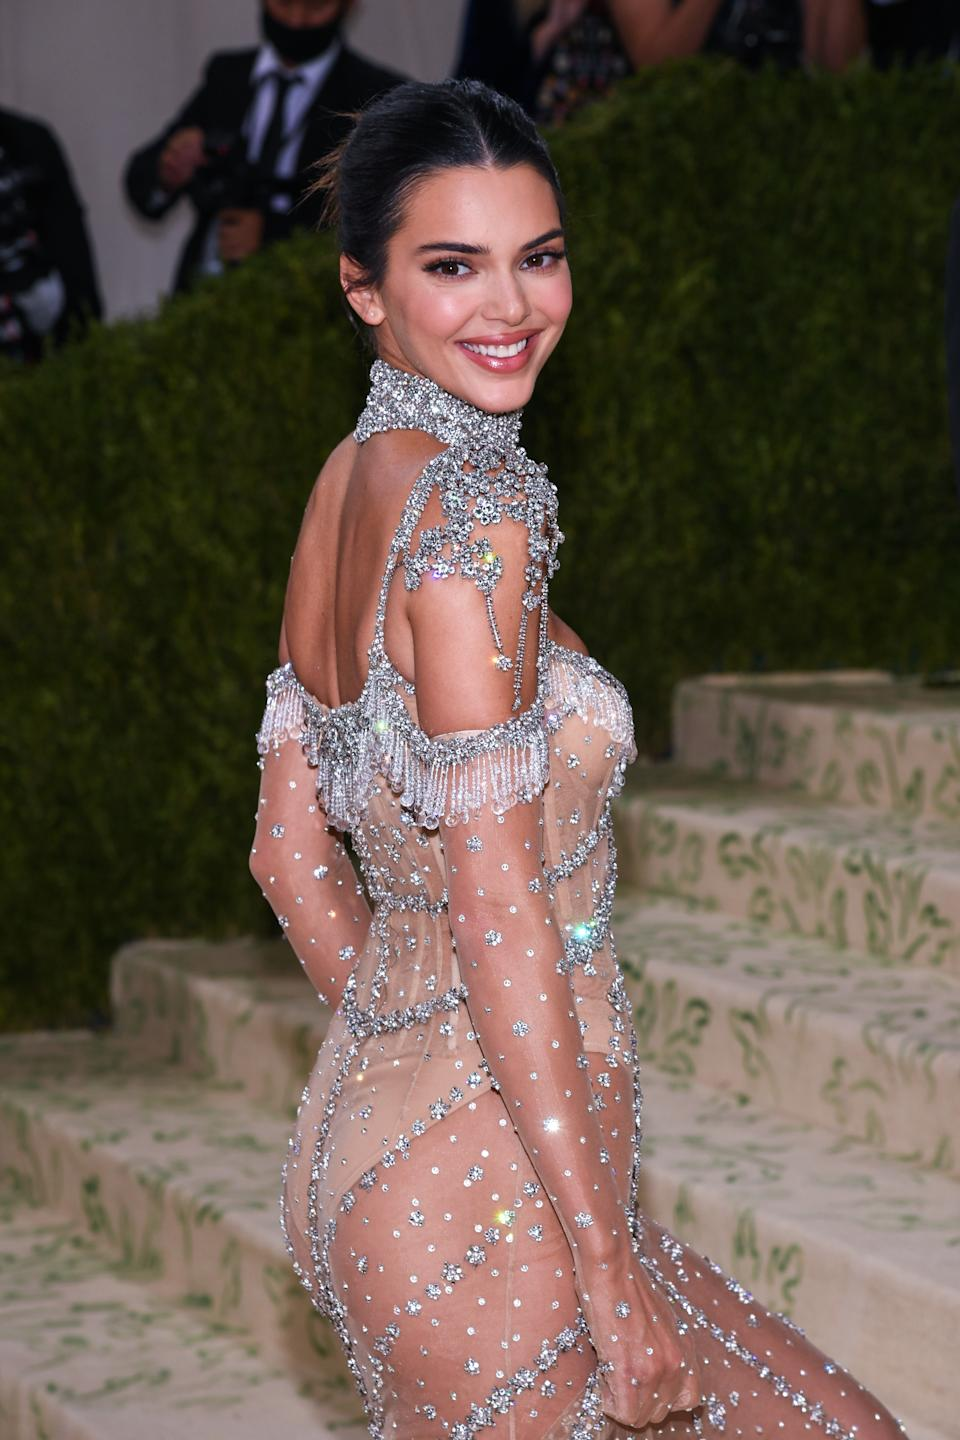 Kendall Jenner walking on the red carpet at the 2021 Metropolitan Museum of Art Costume Institute Gala celebrating the opening of the exhibition titled In America: A Lexicon of Fashion held at the Metropolitan Museum of Art in New York, NY on September 13, 2021. (Photo by Anthony Behar/Sipa USA)